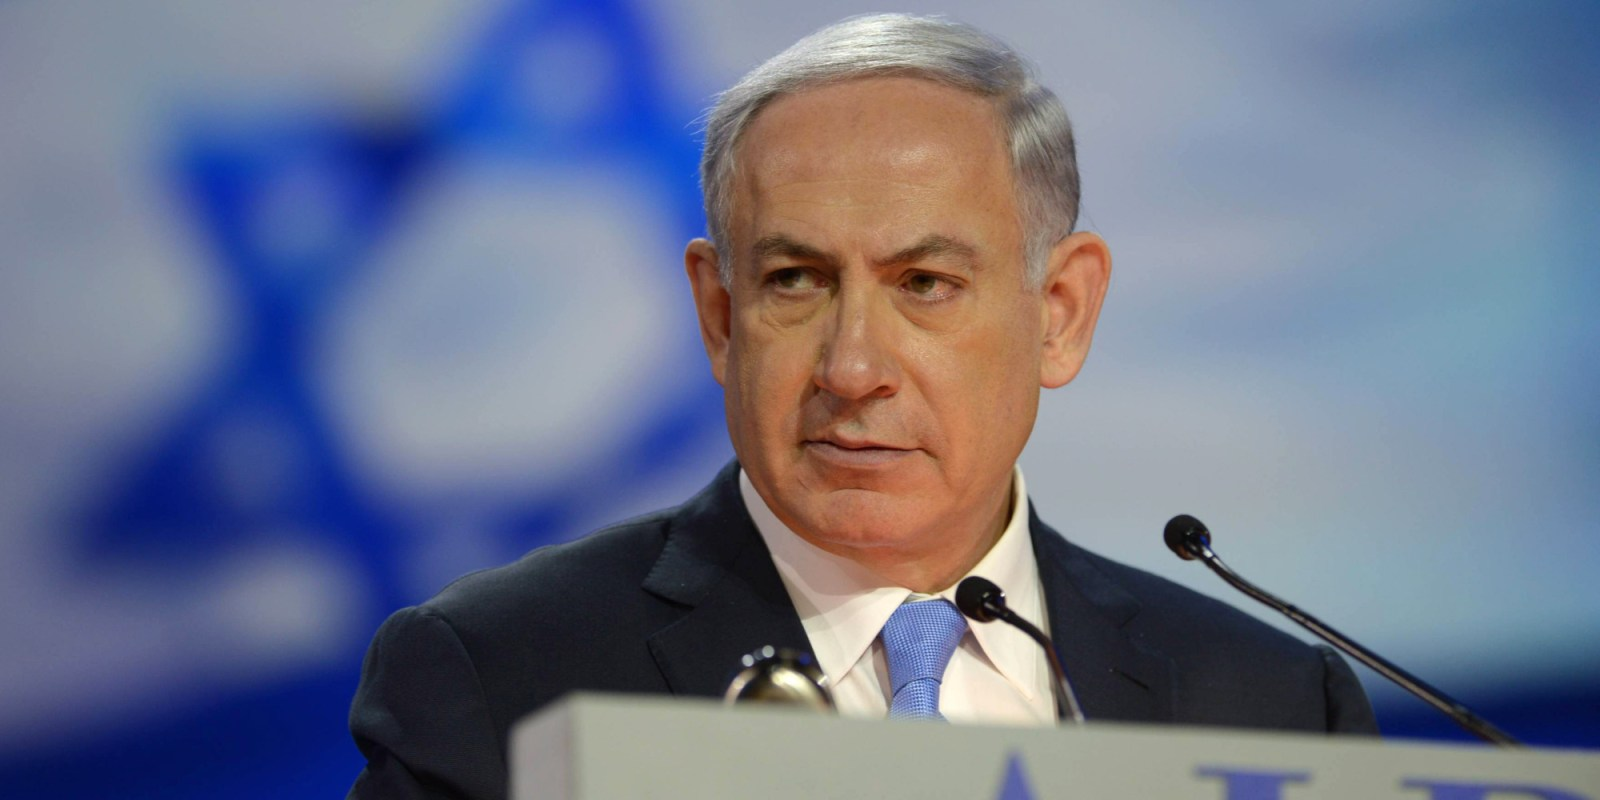 Netanyahu blasts Kerry's speech